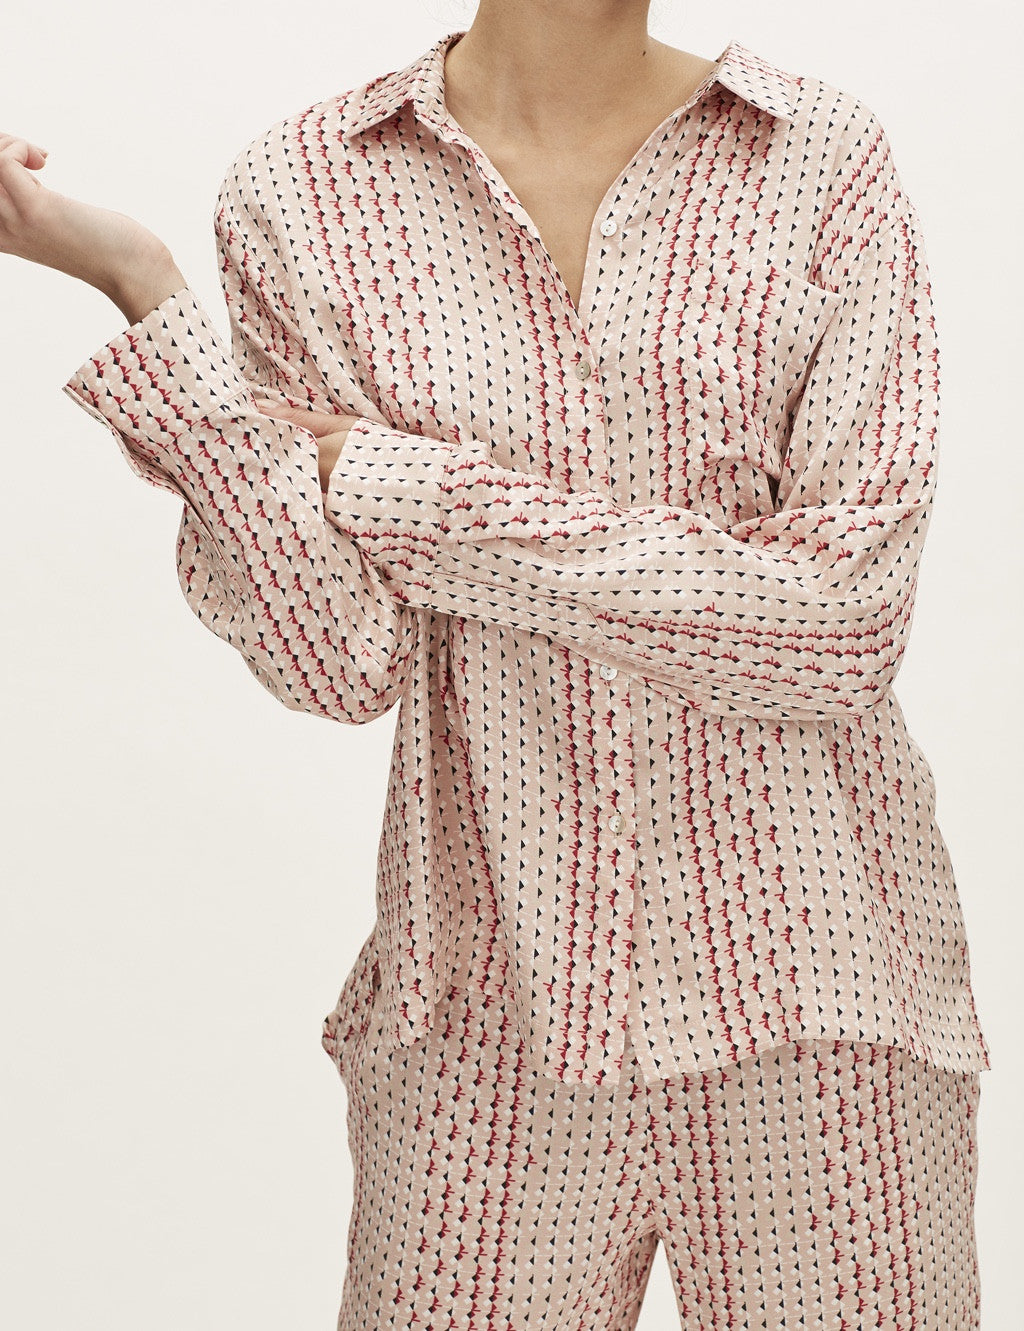 Blush Prism modern pj top